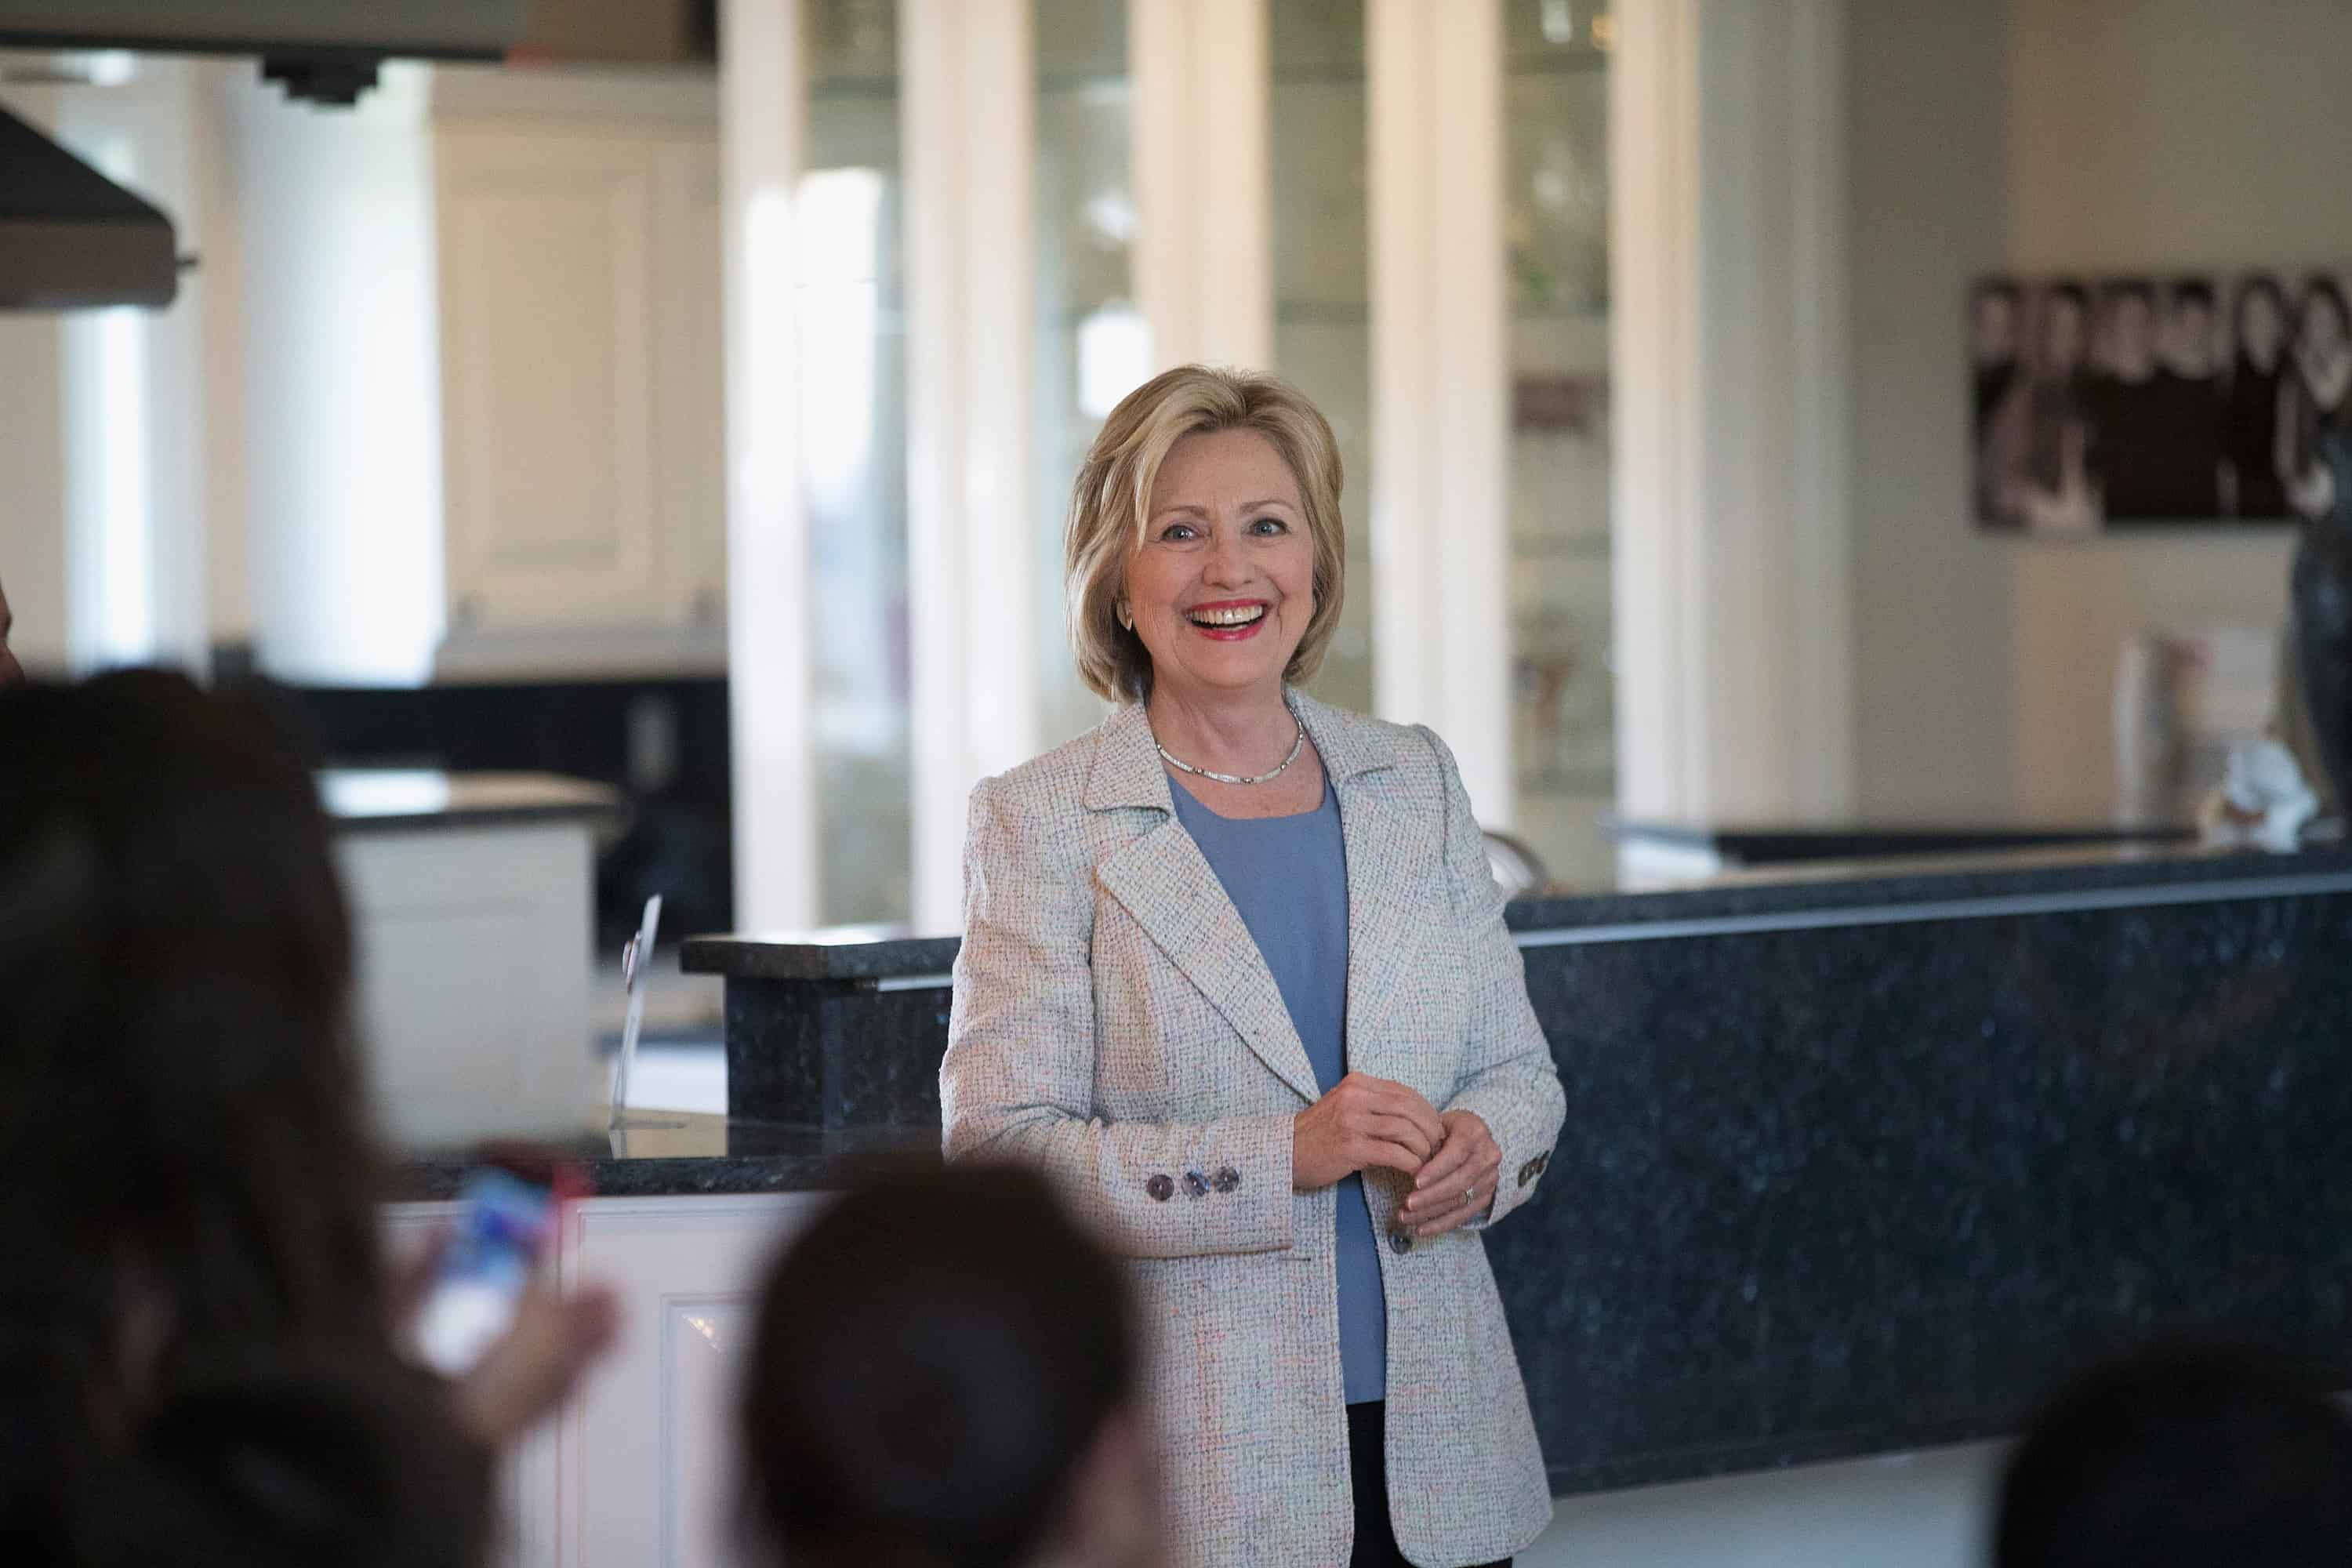 Democratic presidential hopeful and former Secretary of State Hillary Clinton.